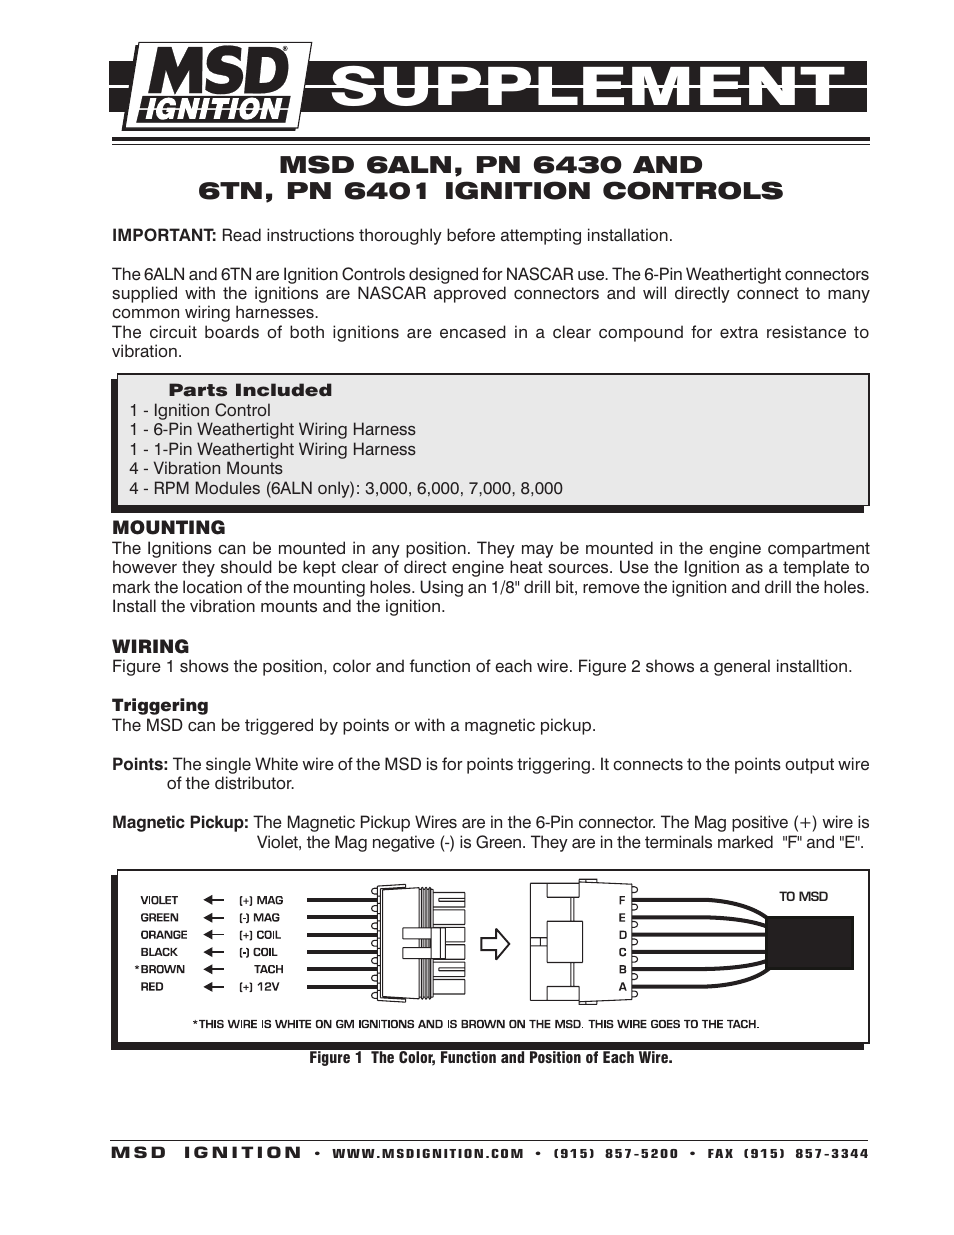 msd 6430 6aln ignition control supplement page1 tg66m3170c00 wiring diagram,m \u2022 indy500 co  at n-0.co